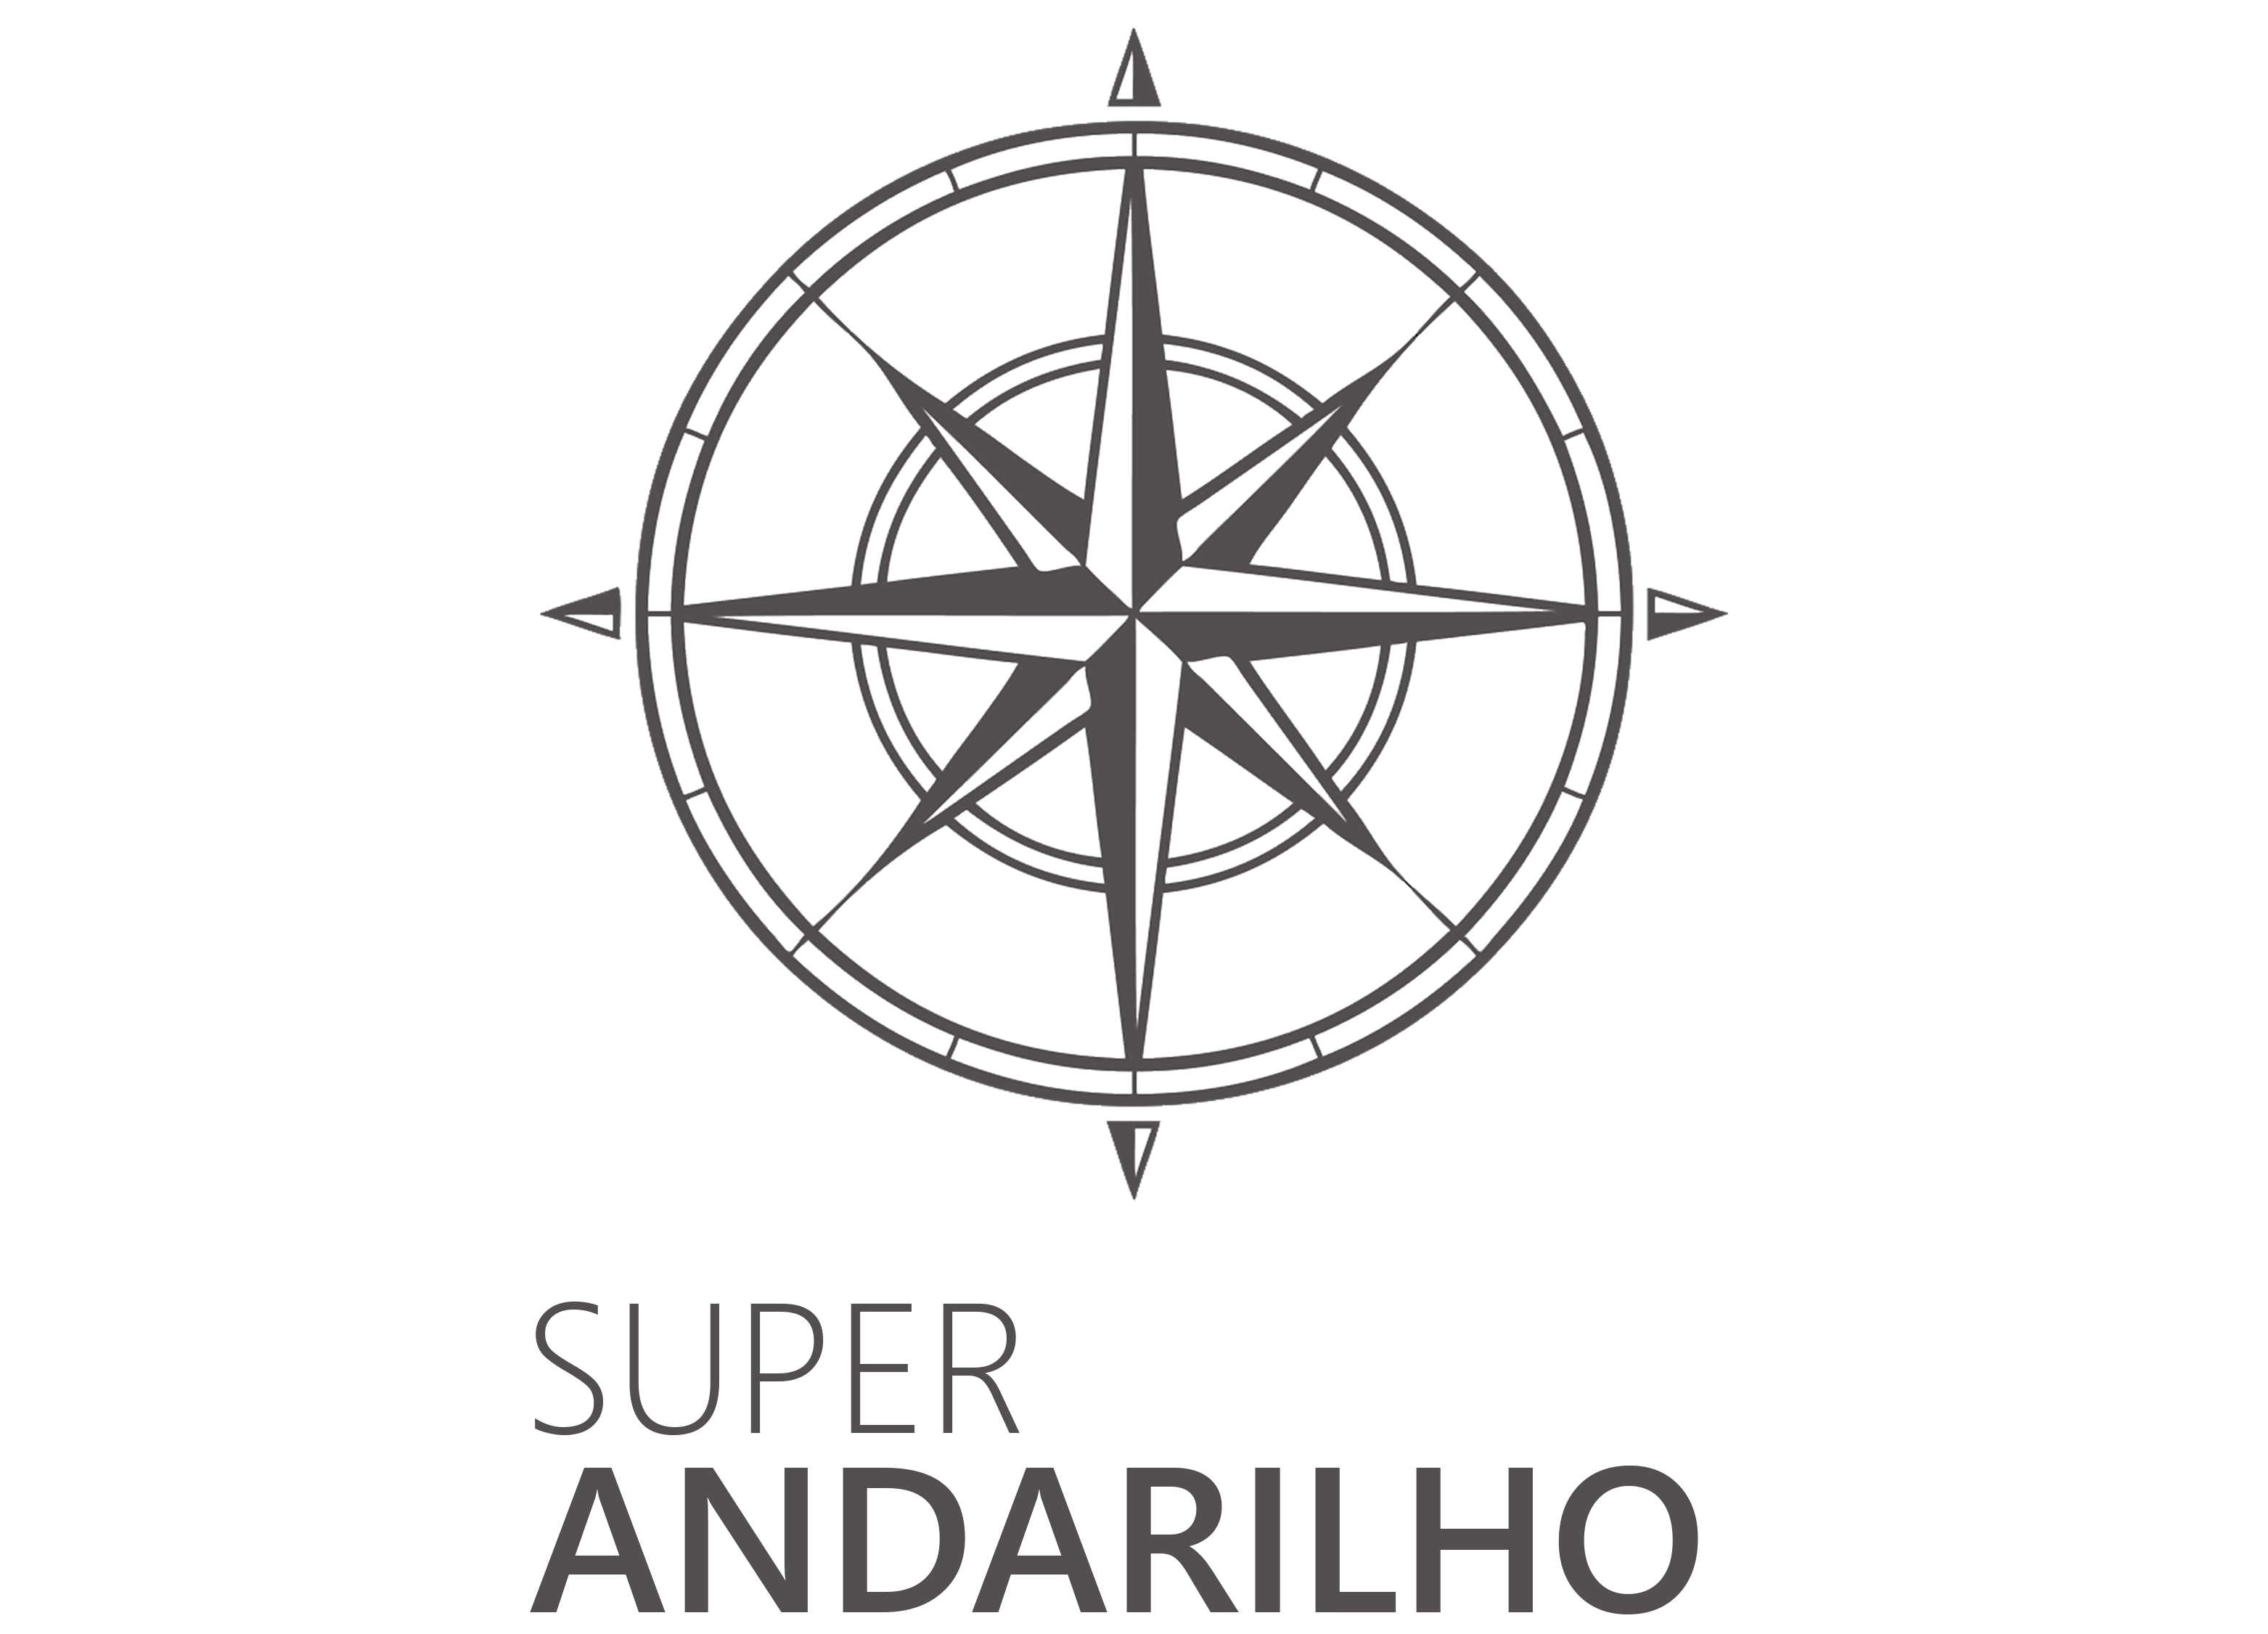 SuperANDARILHO